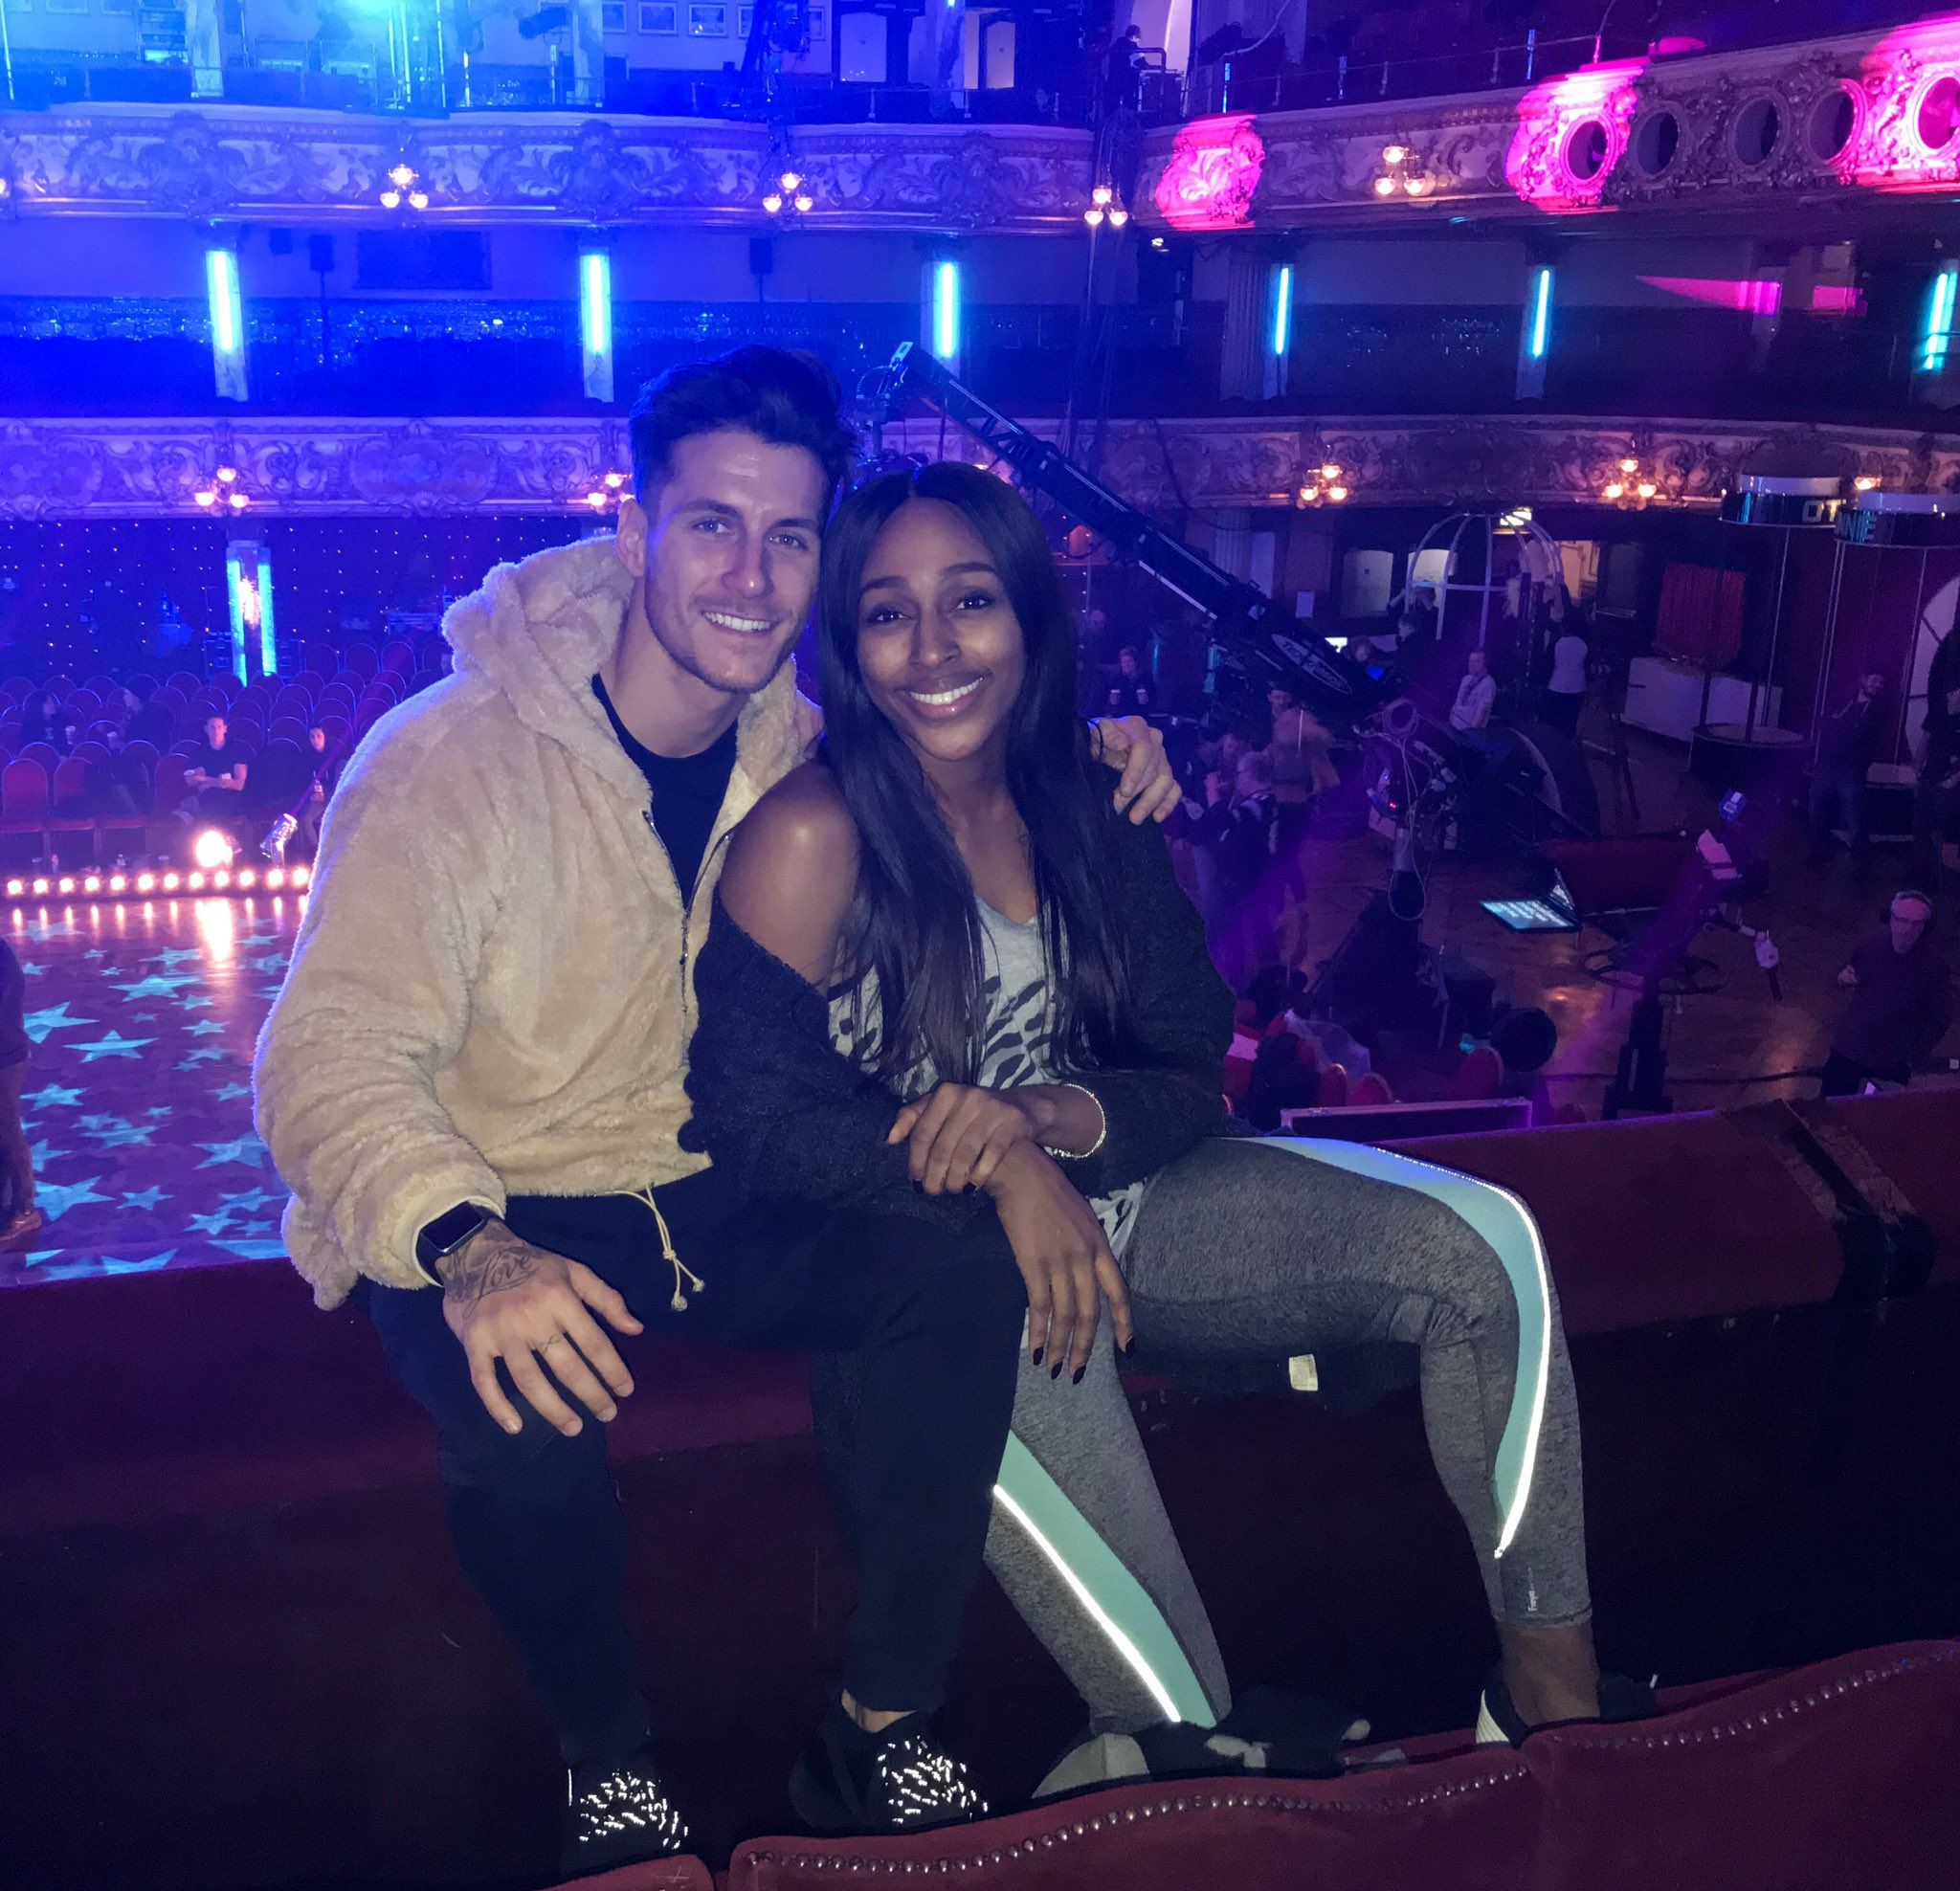 So excited for today! Still pinching myself that we are here! can't wait for tonight ! 💋 @bbcstrictly https://t.co/M4ziMV60Cn